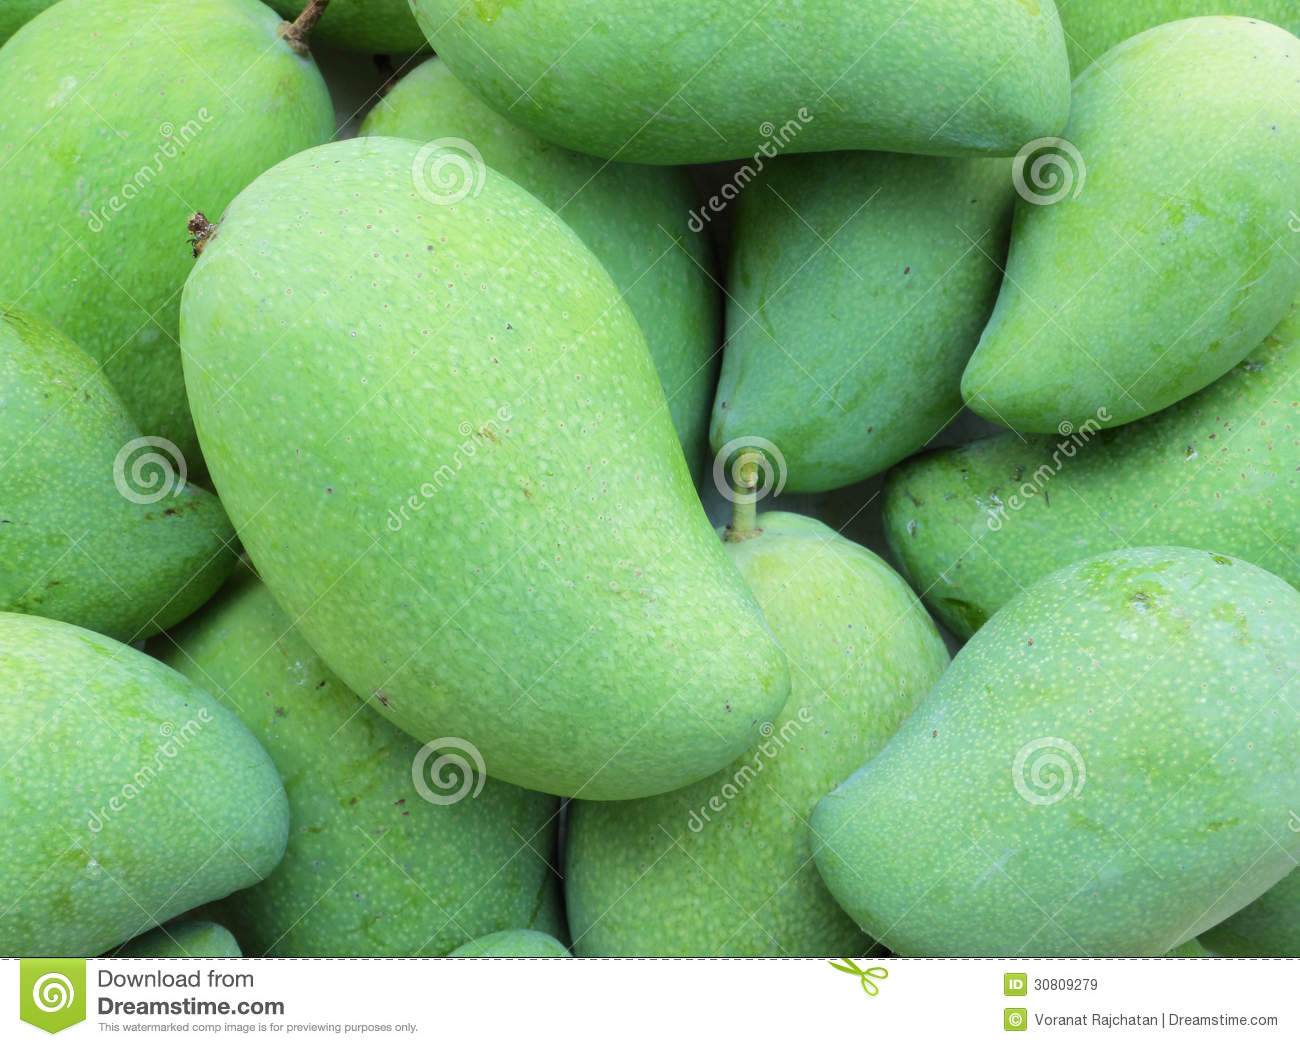 Green Mango Fruit Royalty Free Stock Images - Image: 30809279